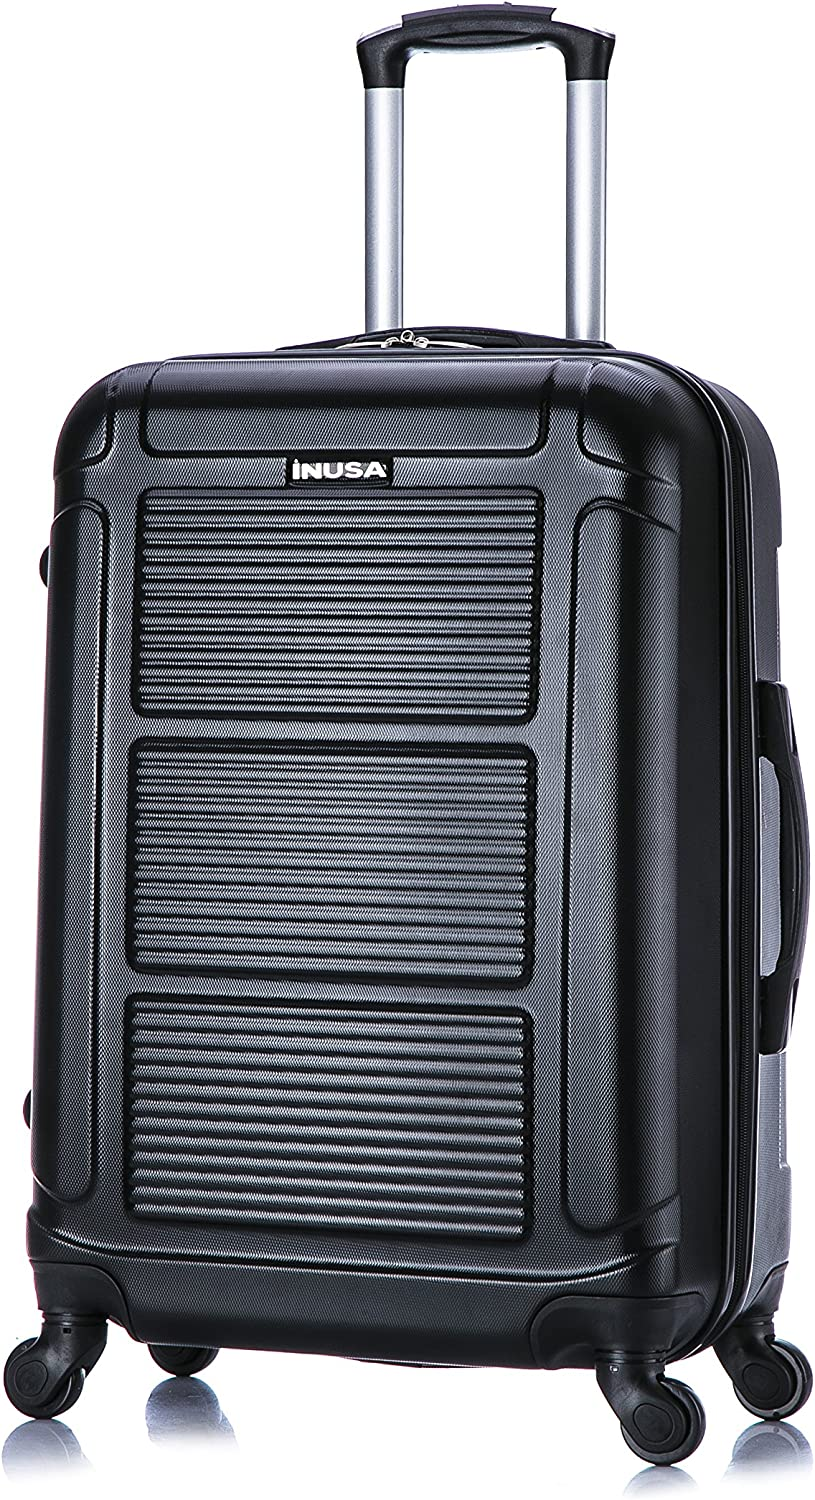 InUSA Pilot Luggage Lightweight Hardside Carry-On Spinner 20 inch Two Tone Green